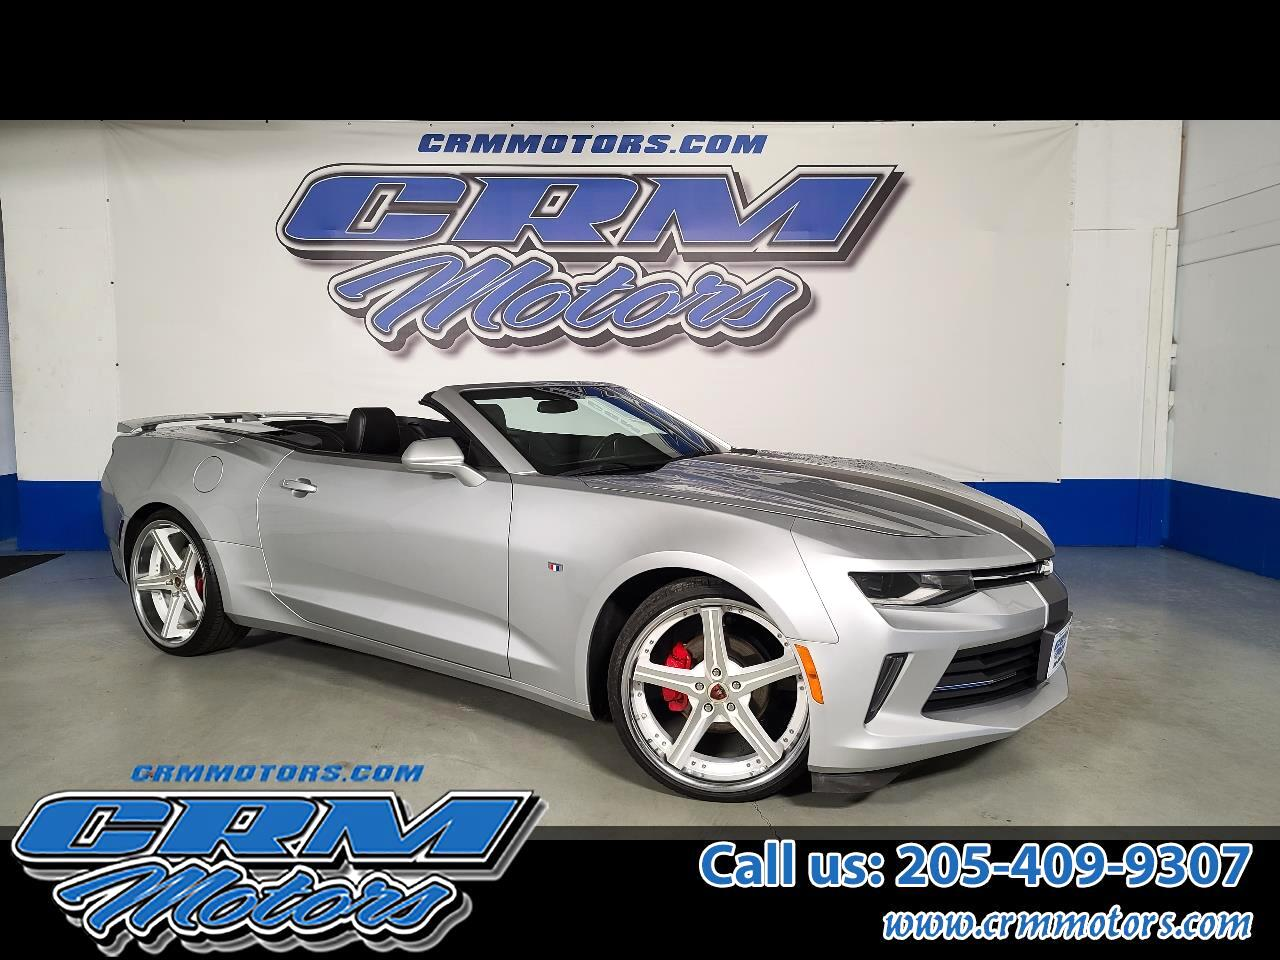 Chevrolet Camaro 2dr Convertible RS 2017